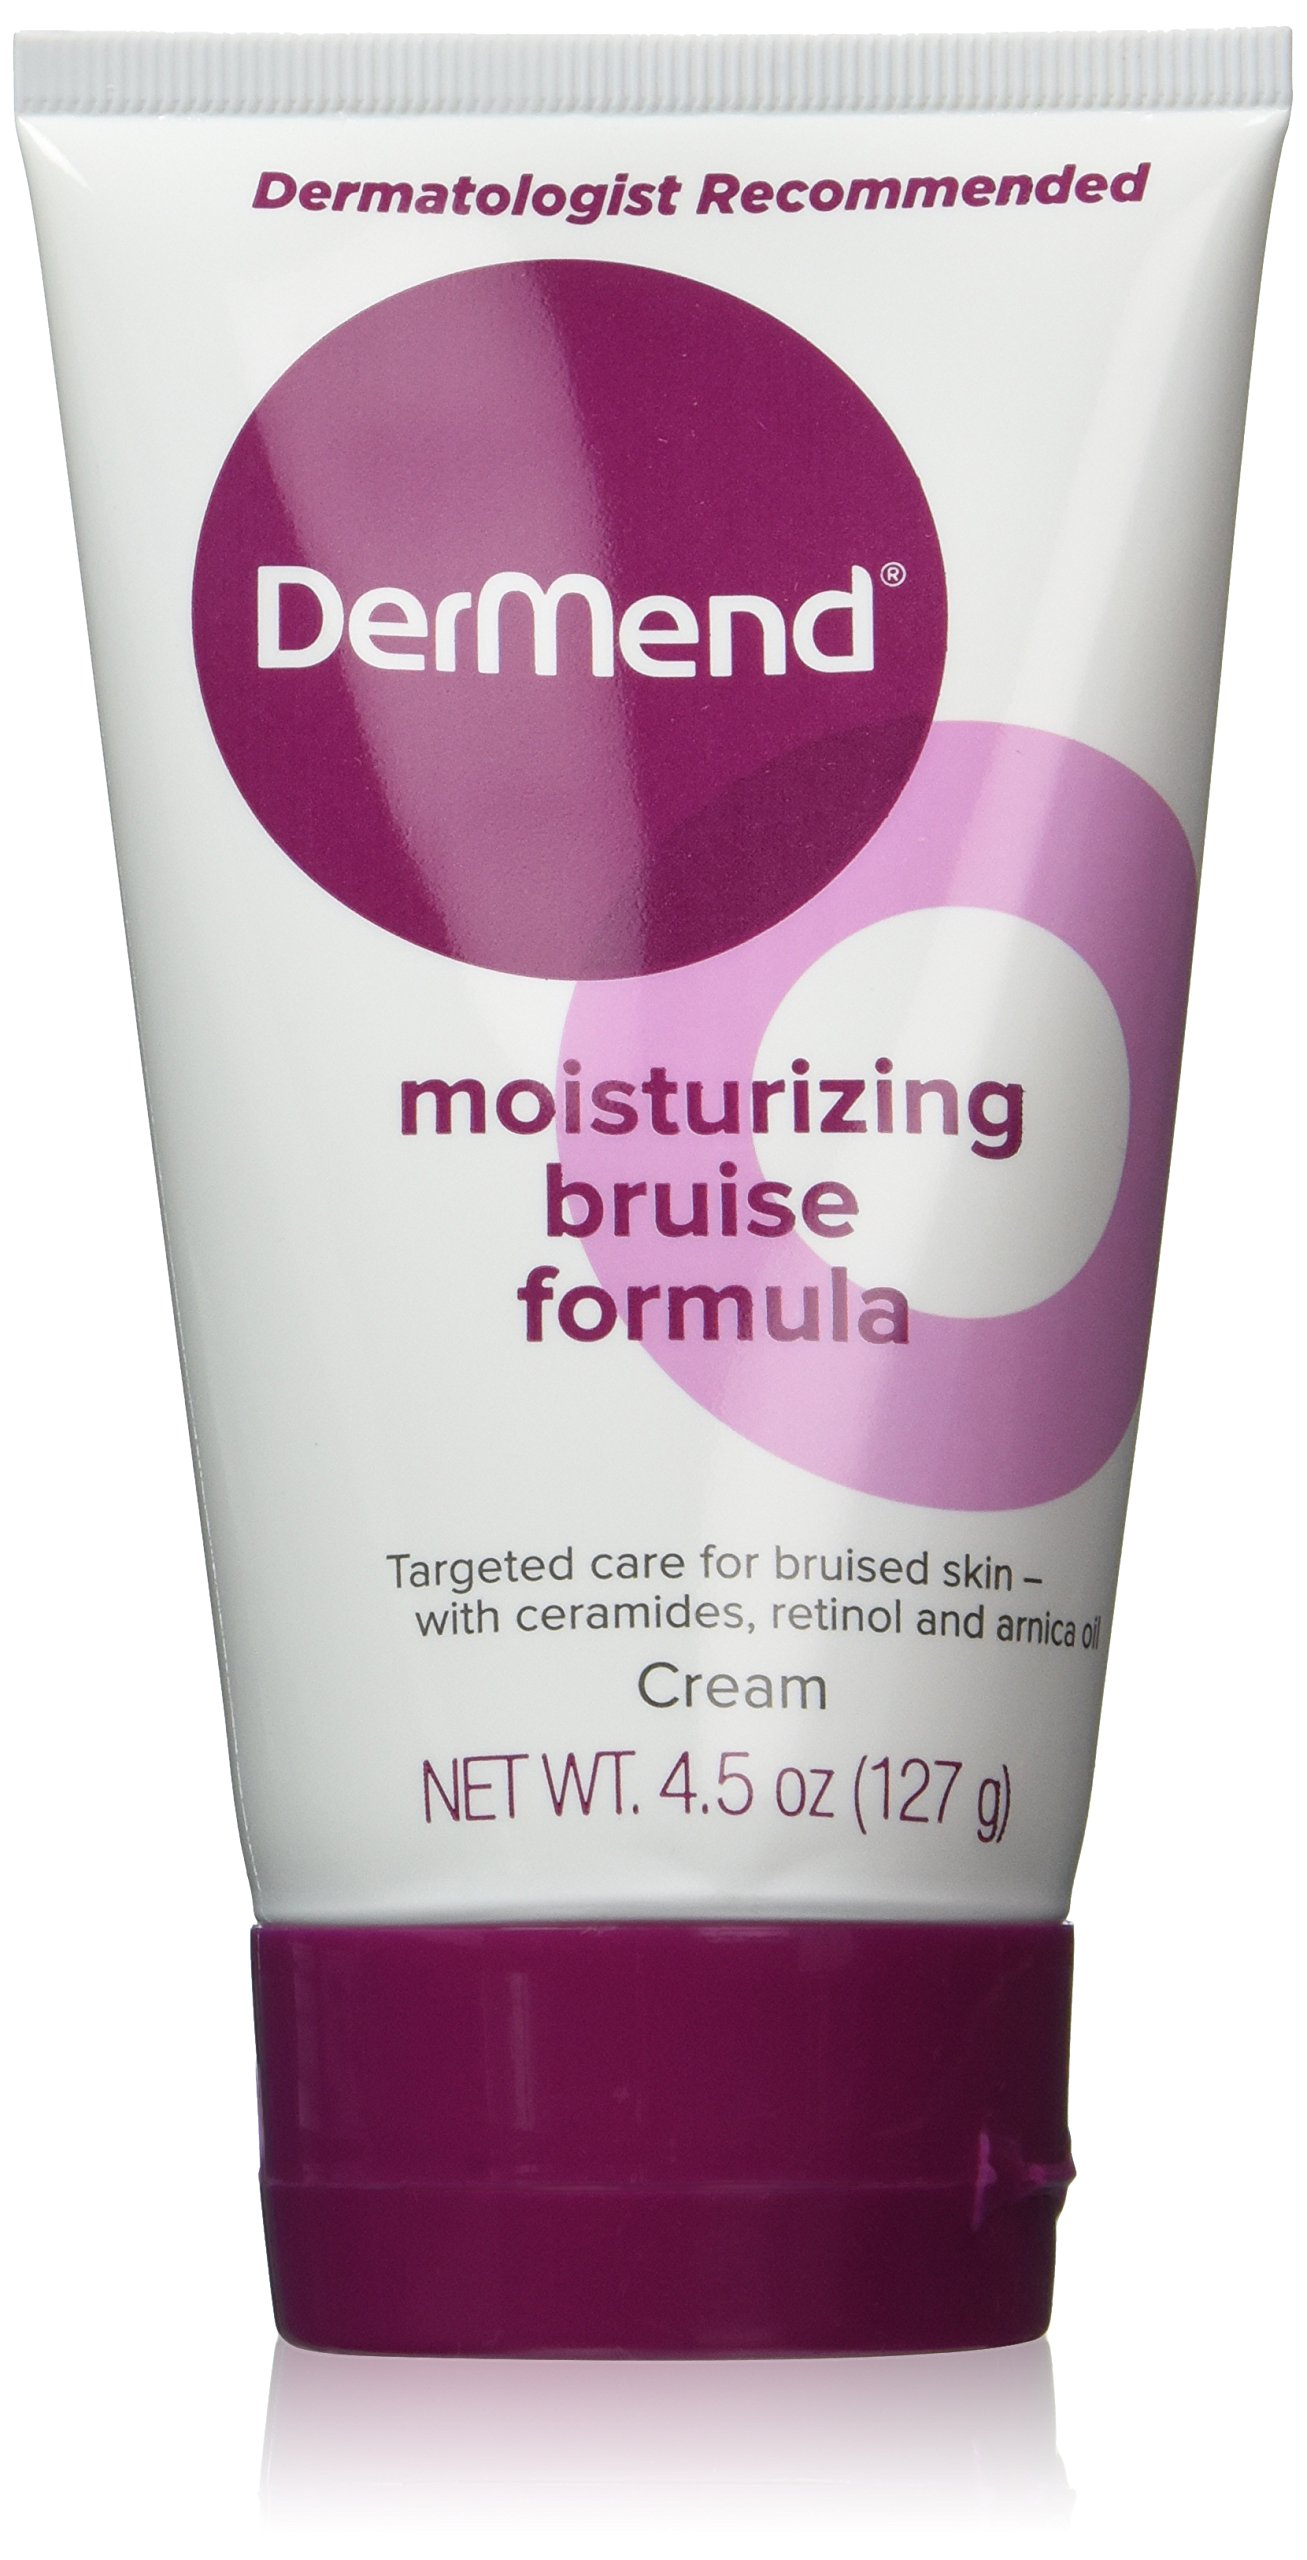 Dermend Moisturizing Bruise Formula Cream 4.5 Oz (Pack of 2)